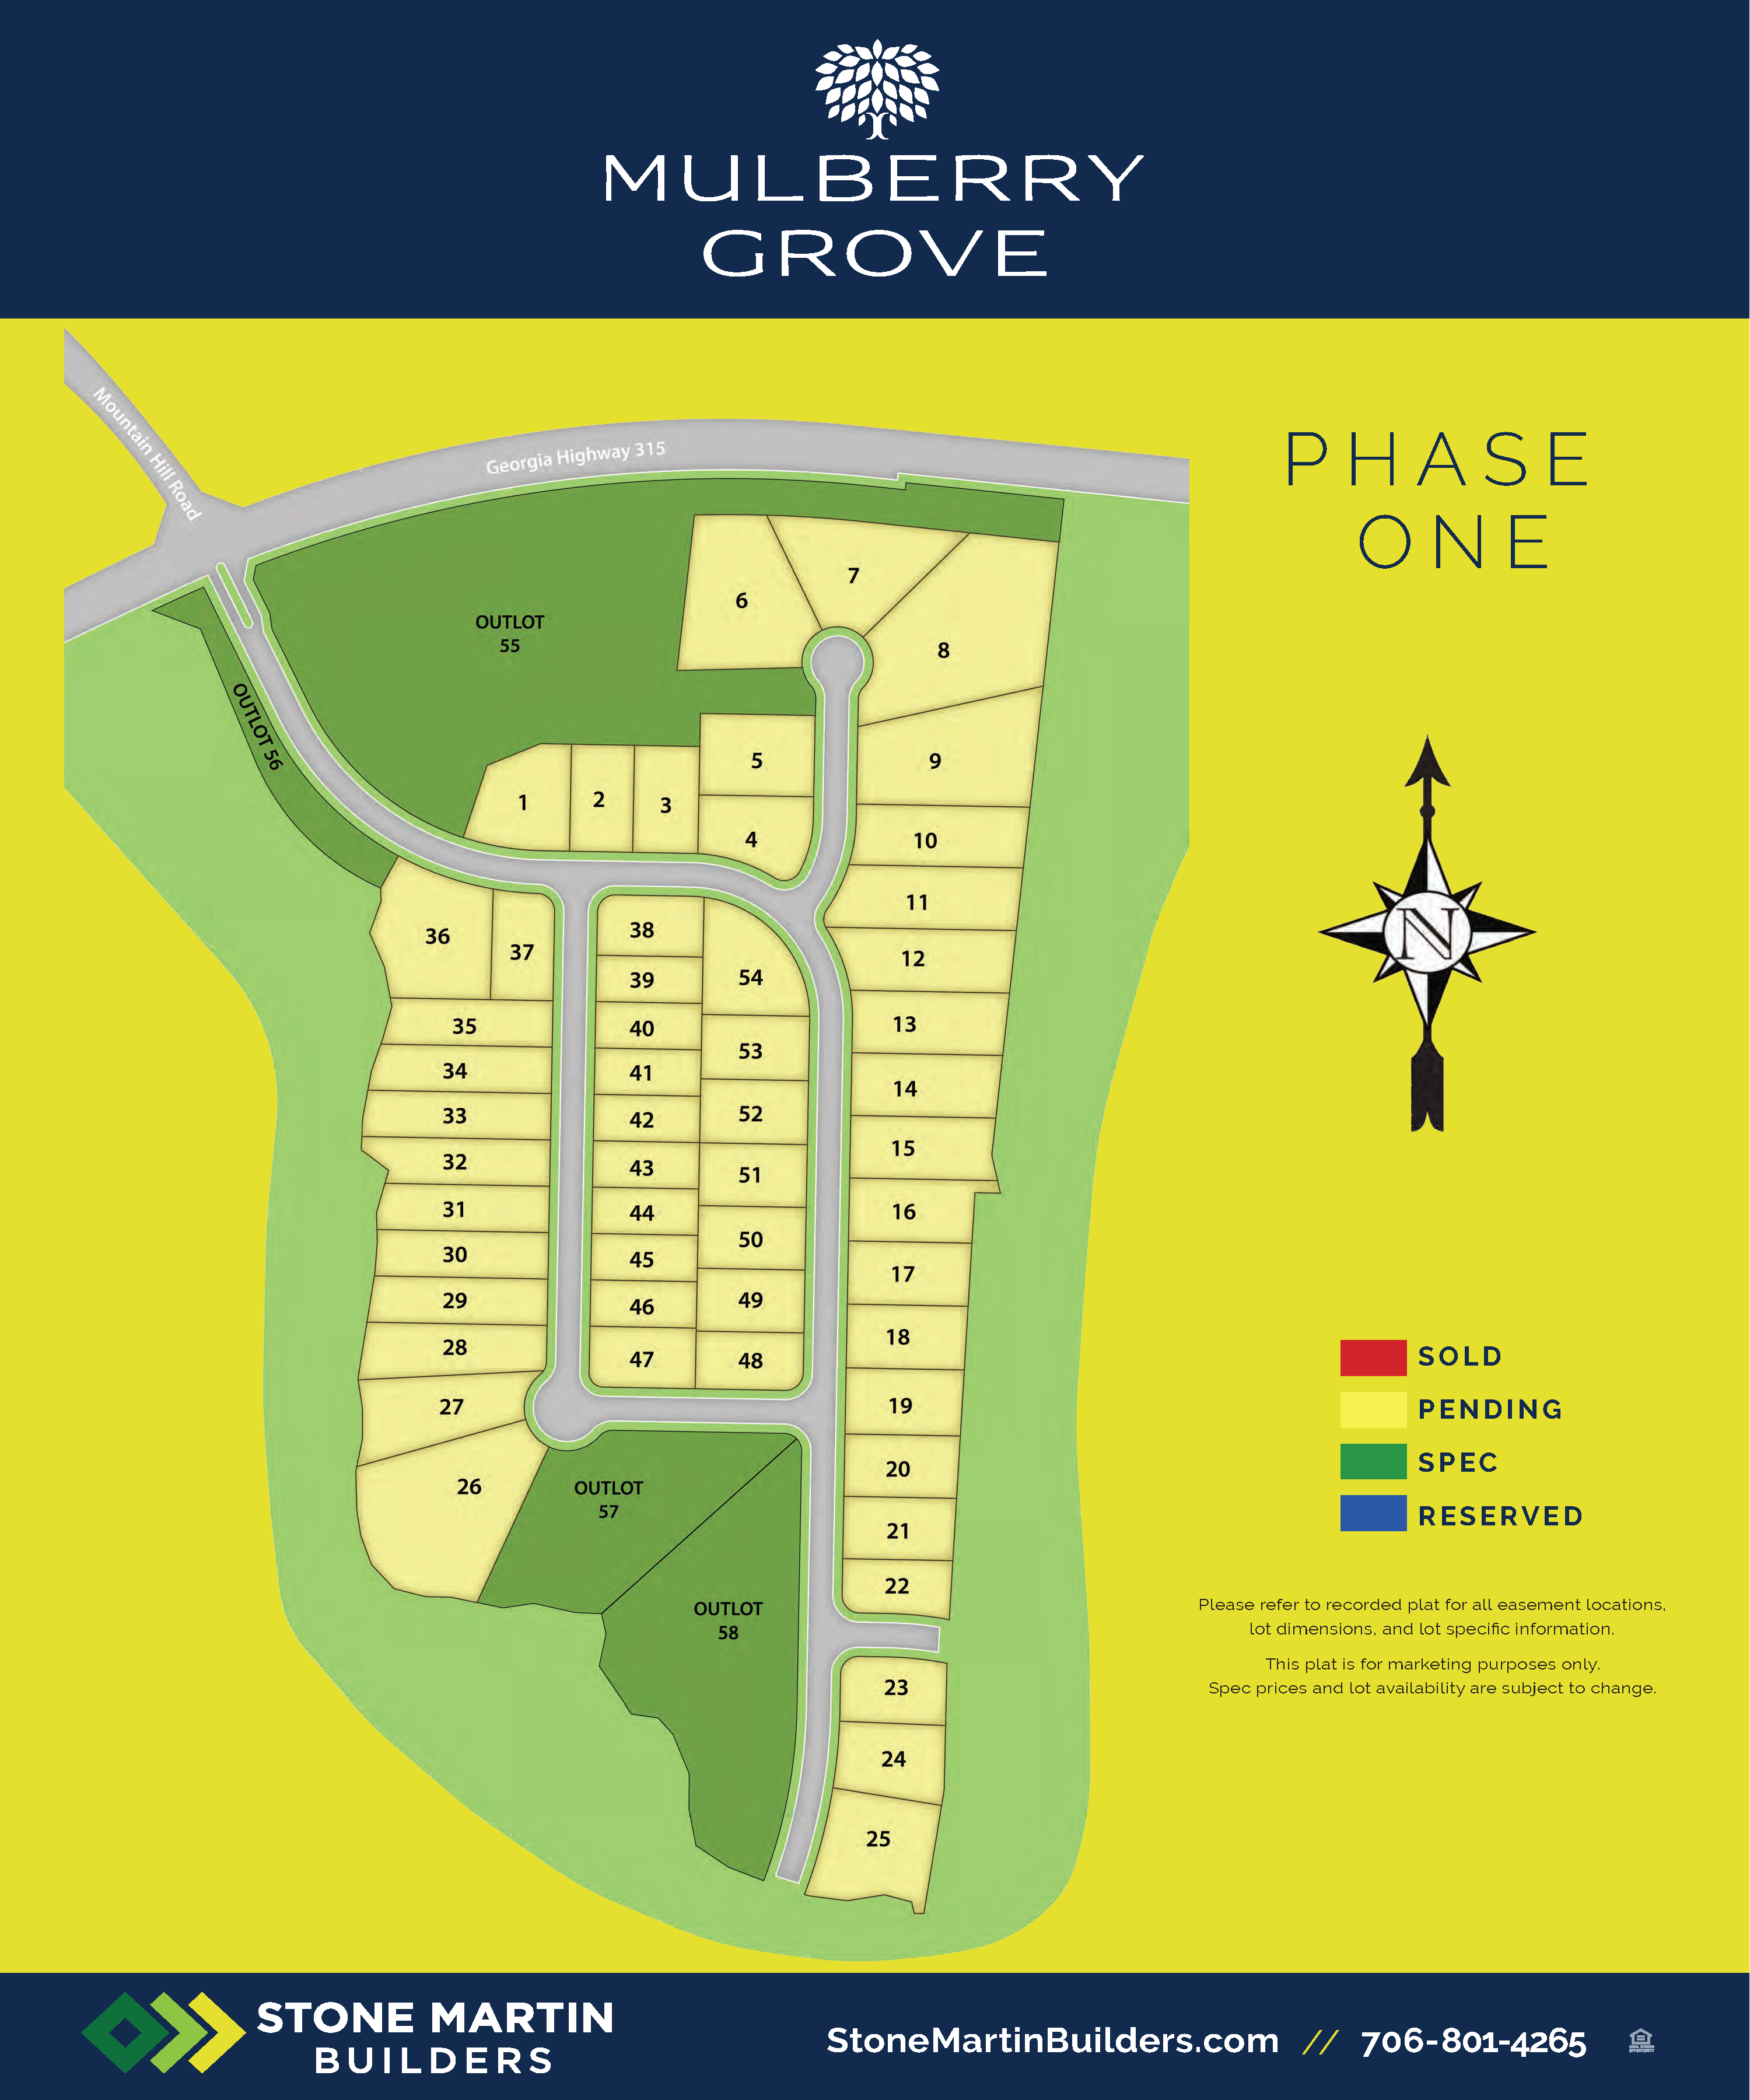 Harris County, GA Mulberry Grove New Homes from Stone Martin Builders